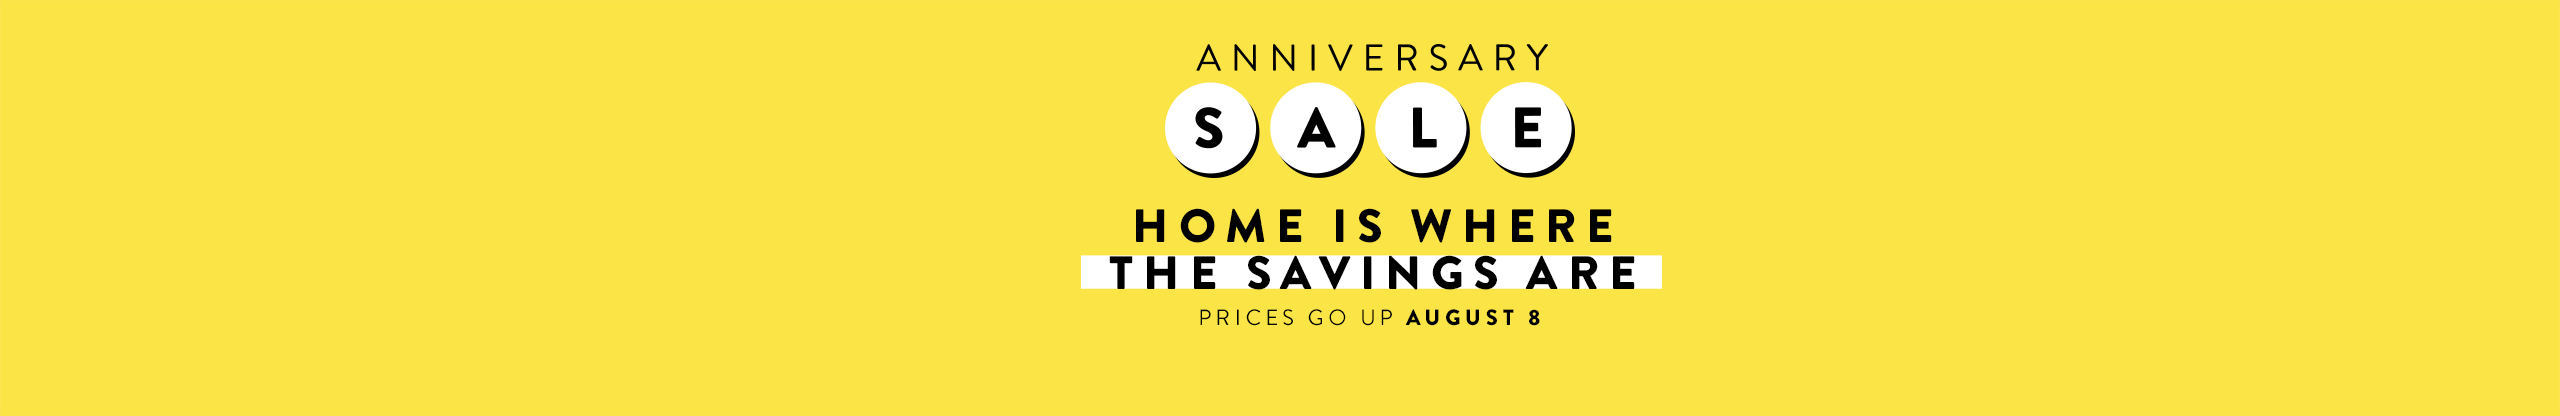 Anniversary Sale, prices go up August 8th.